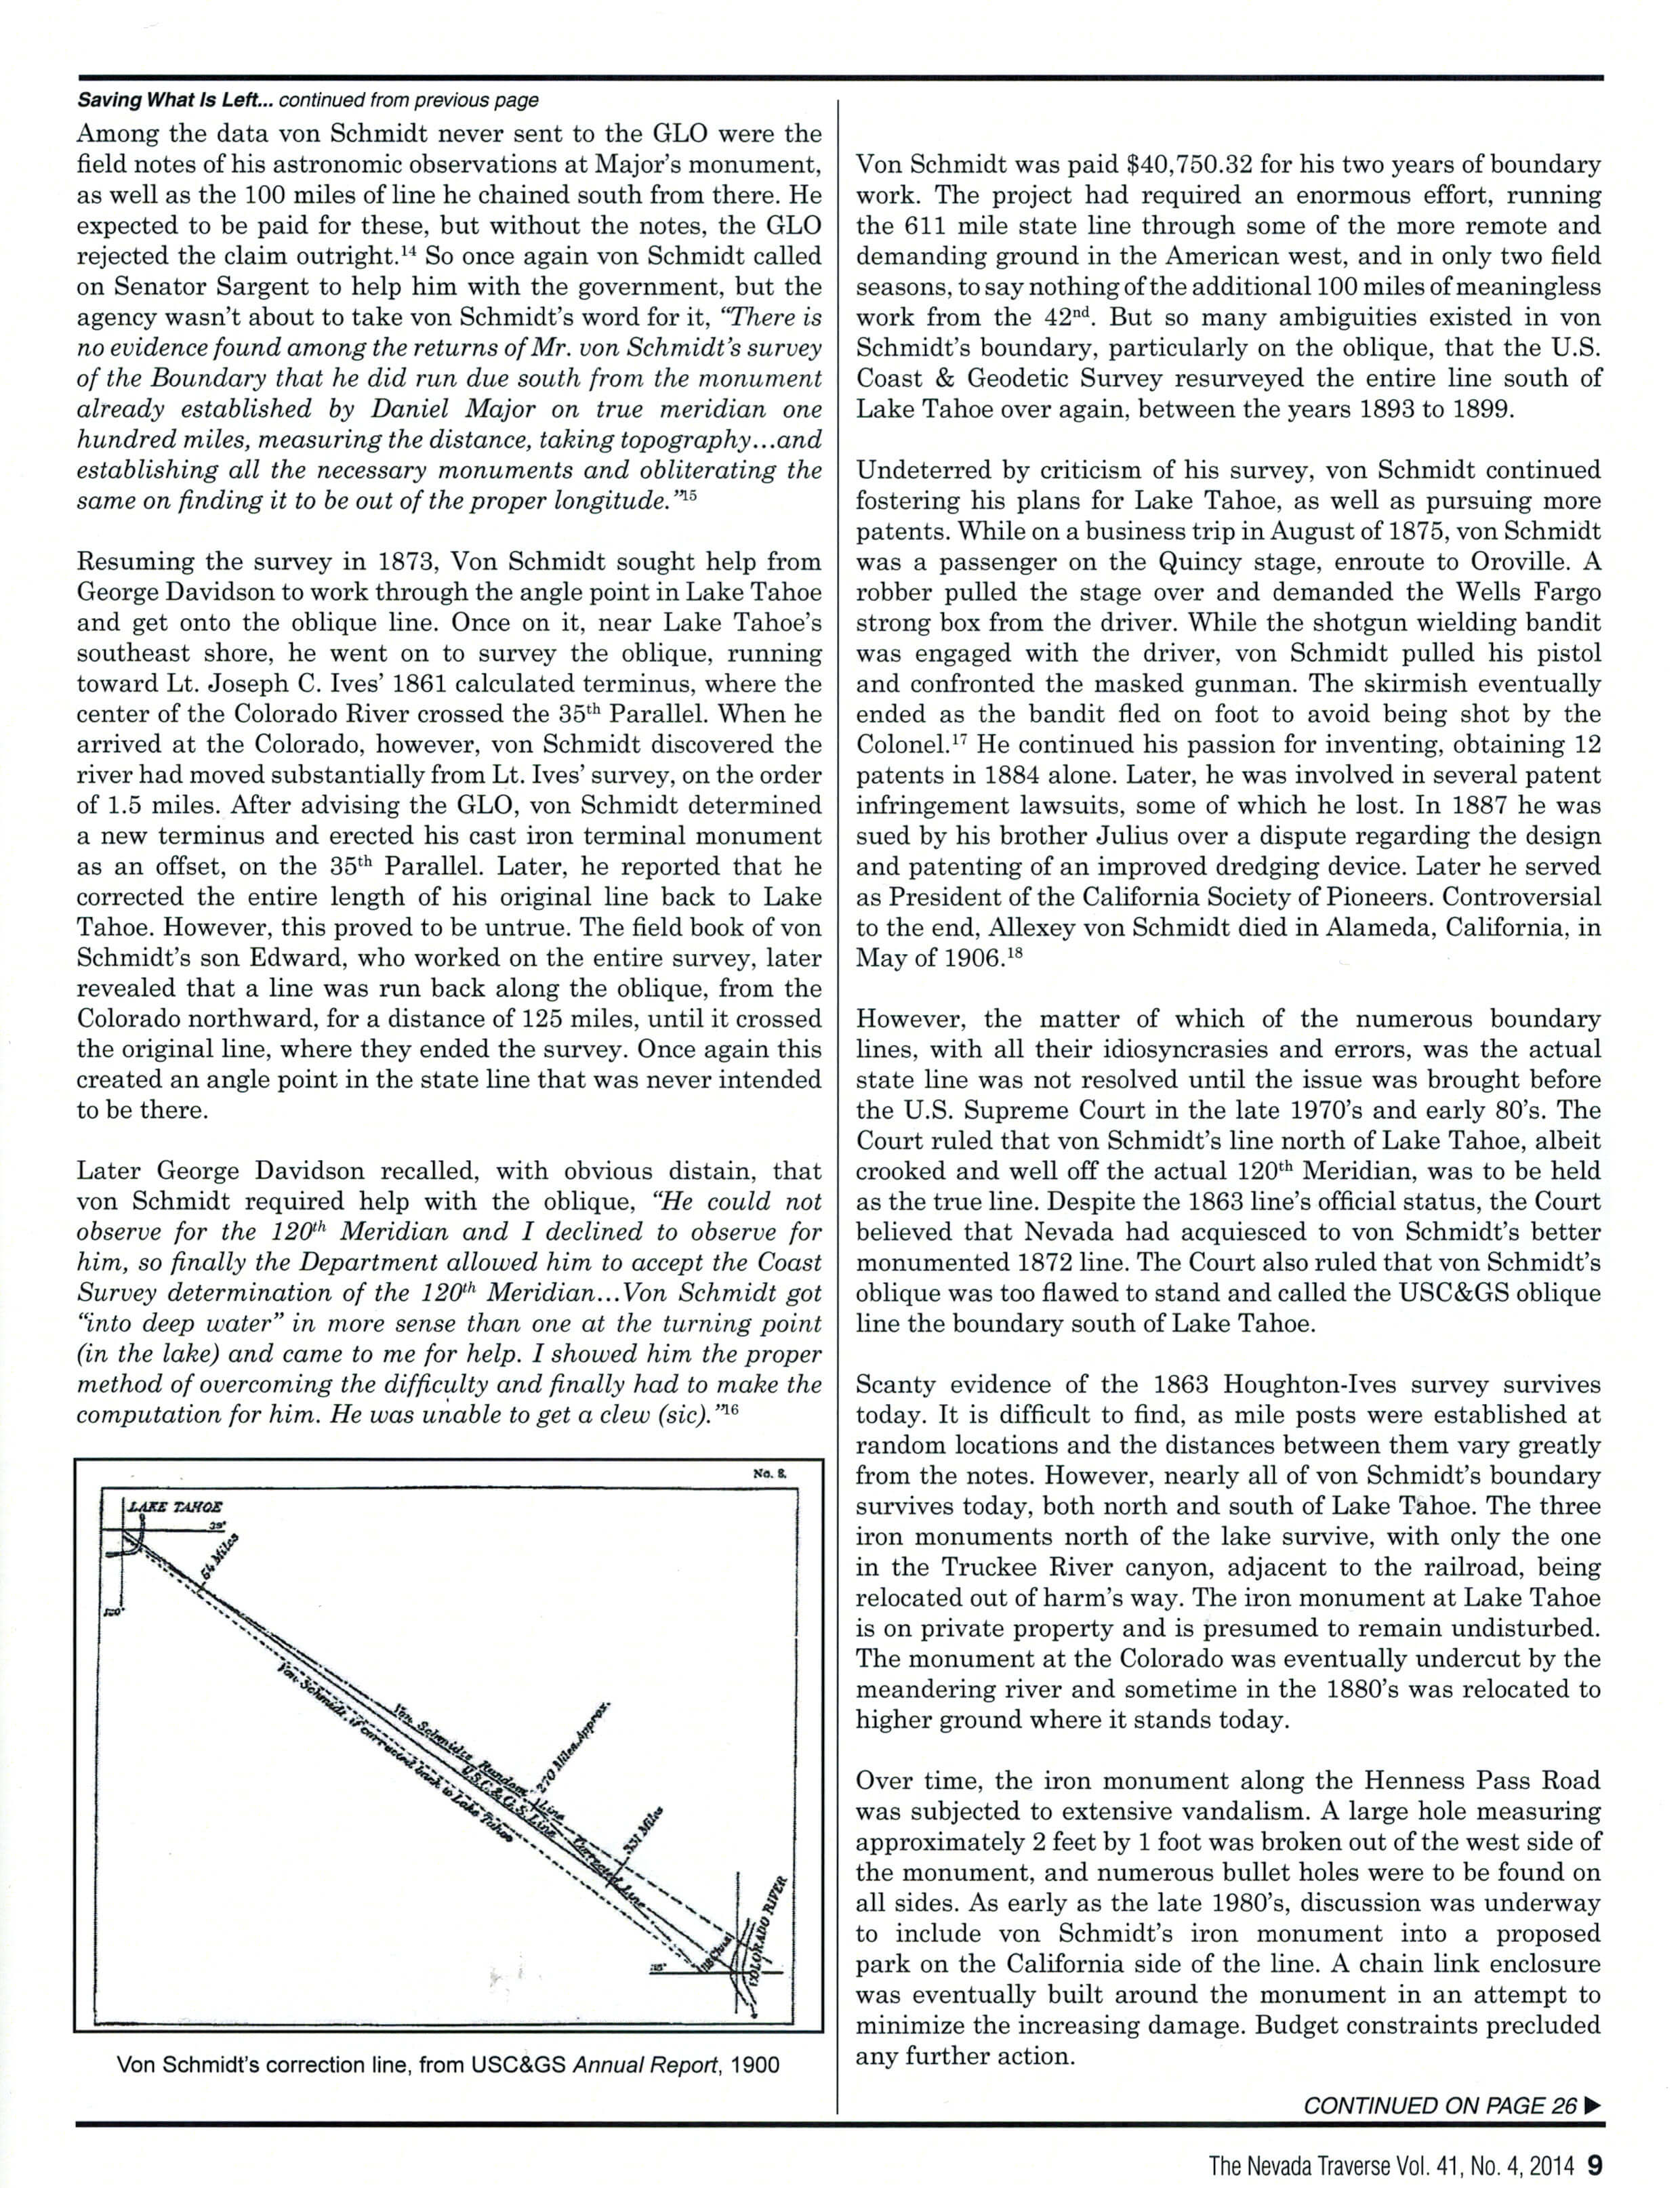 The Nevada Traverse Article_Page_07